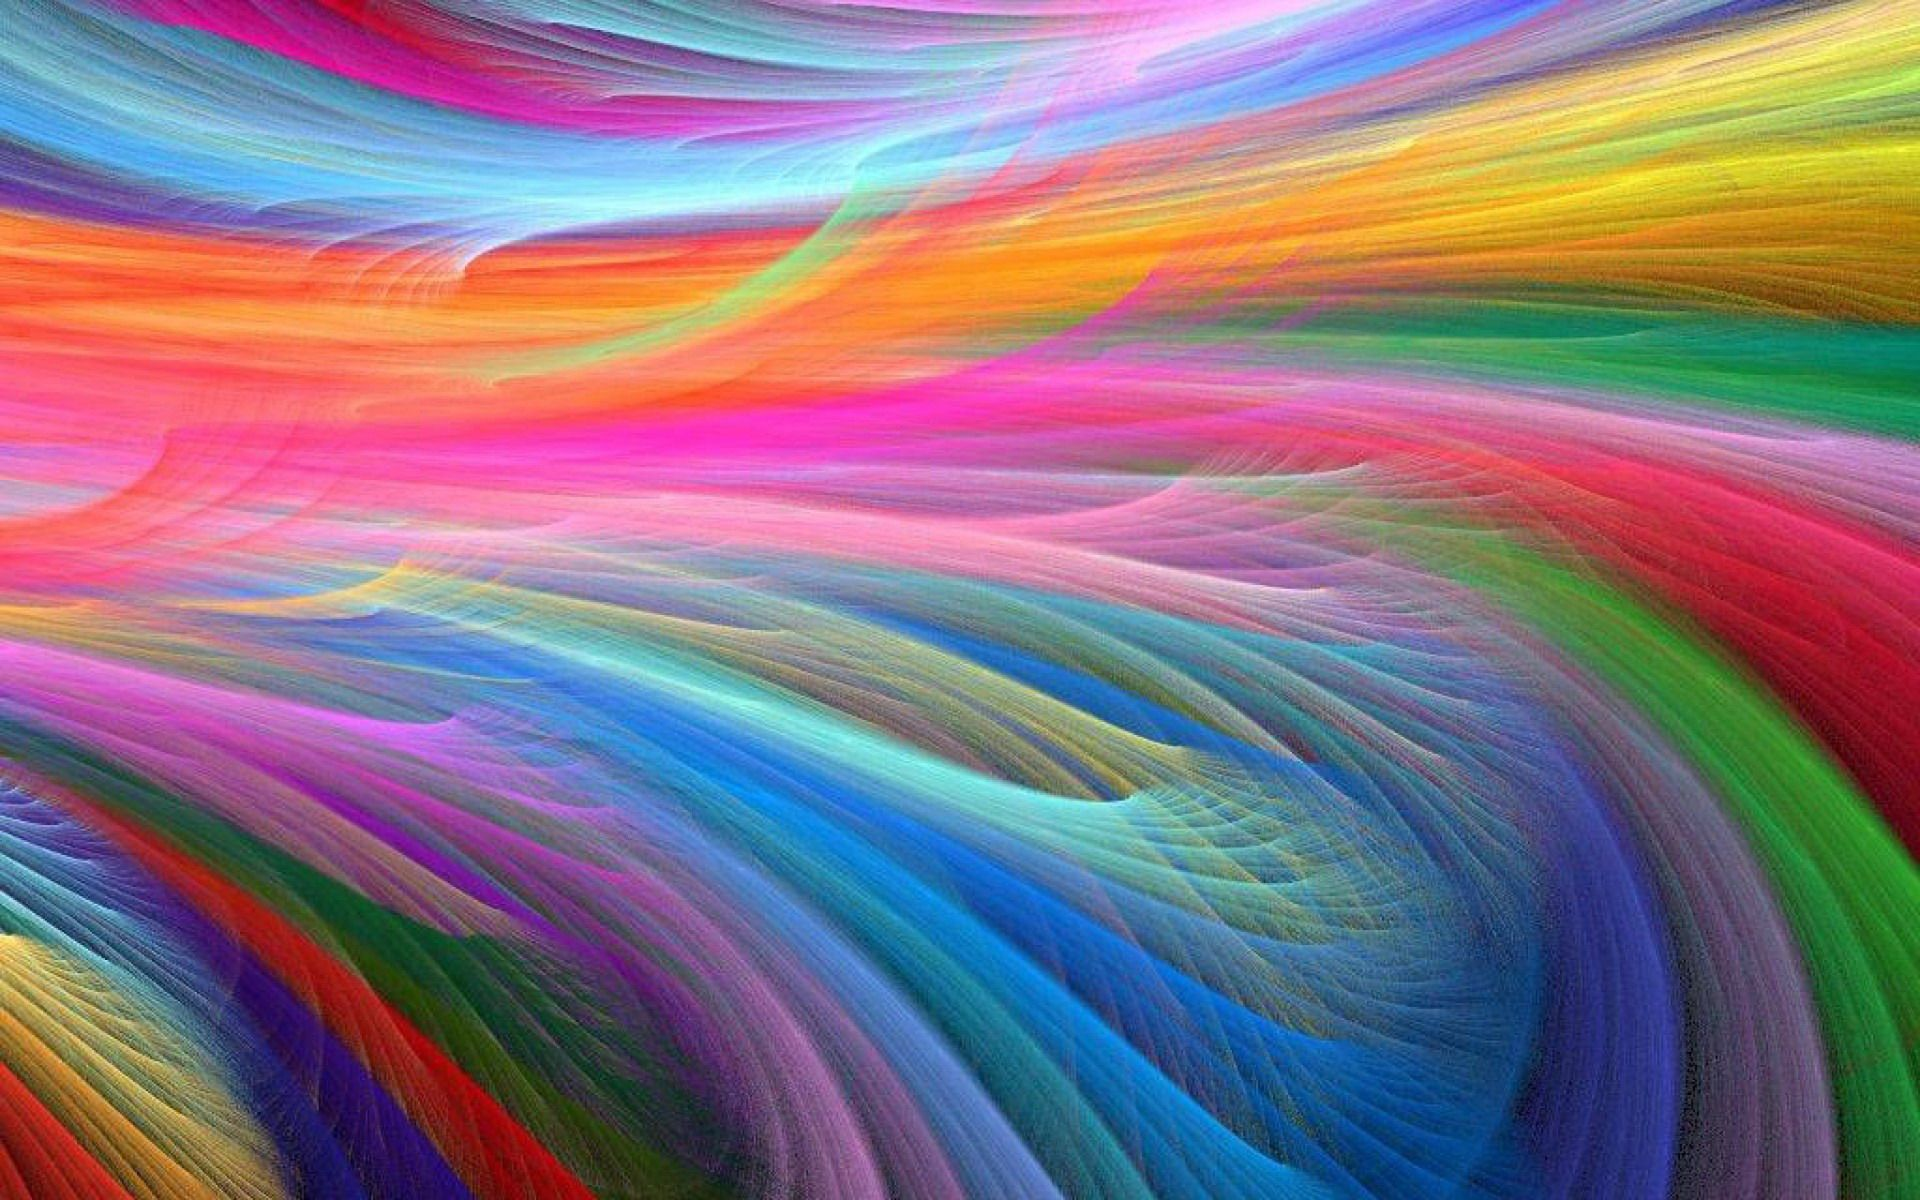 40 Abstract Art Design Ideas - The WoW Style on Modern Painting Ideas  id=29359